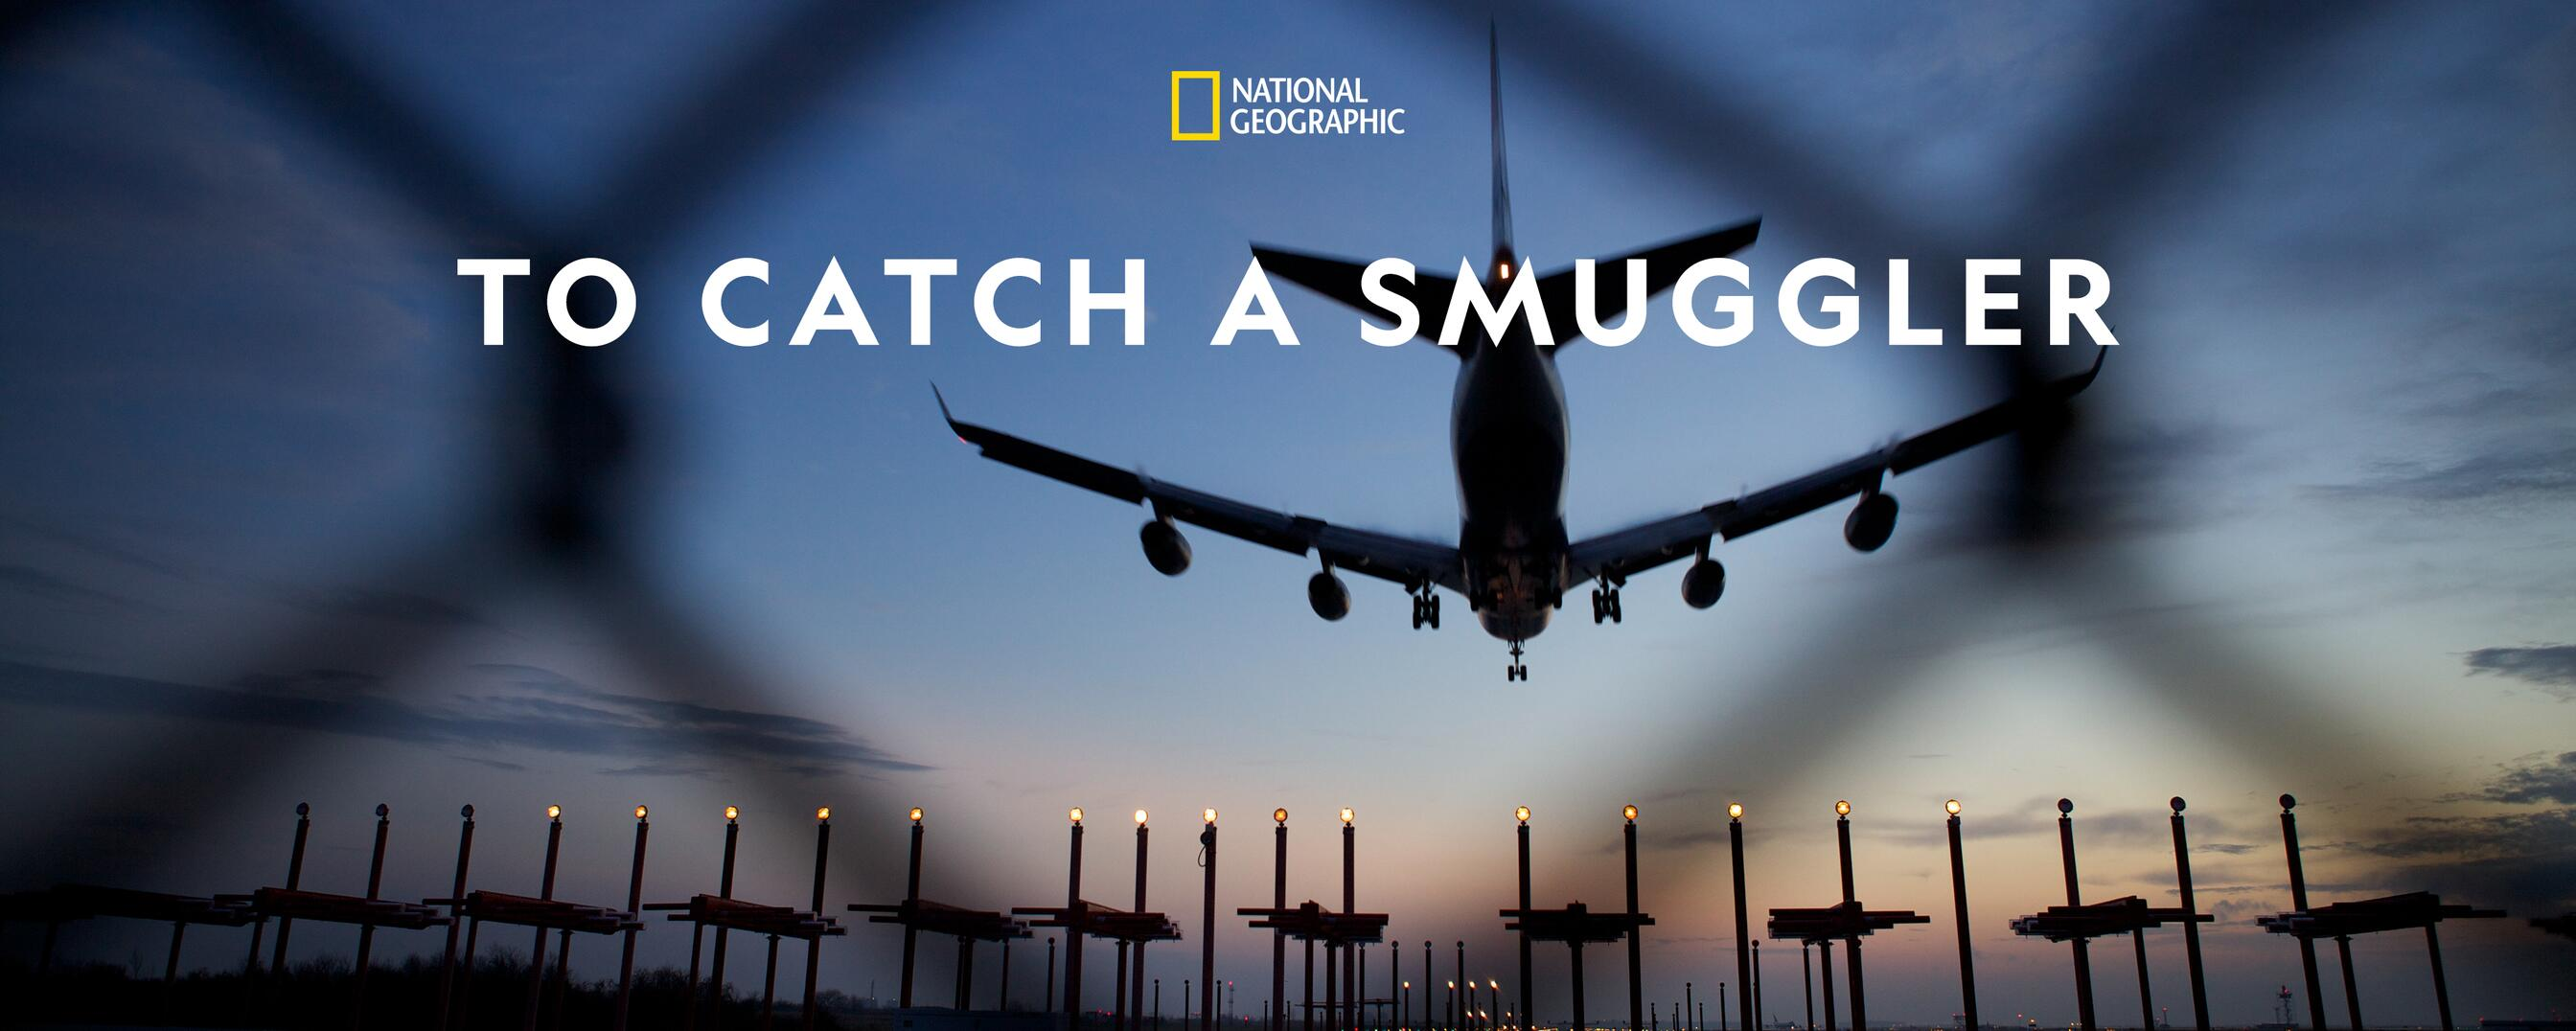 Watch To Catch a Smuggler TV Show - Streaming Online | Nat Geo TV